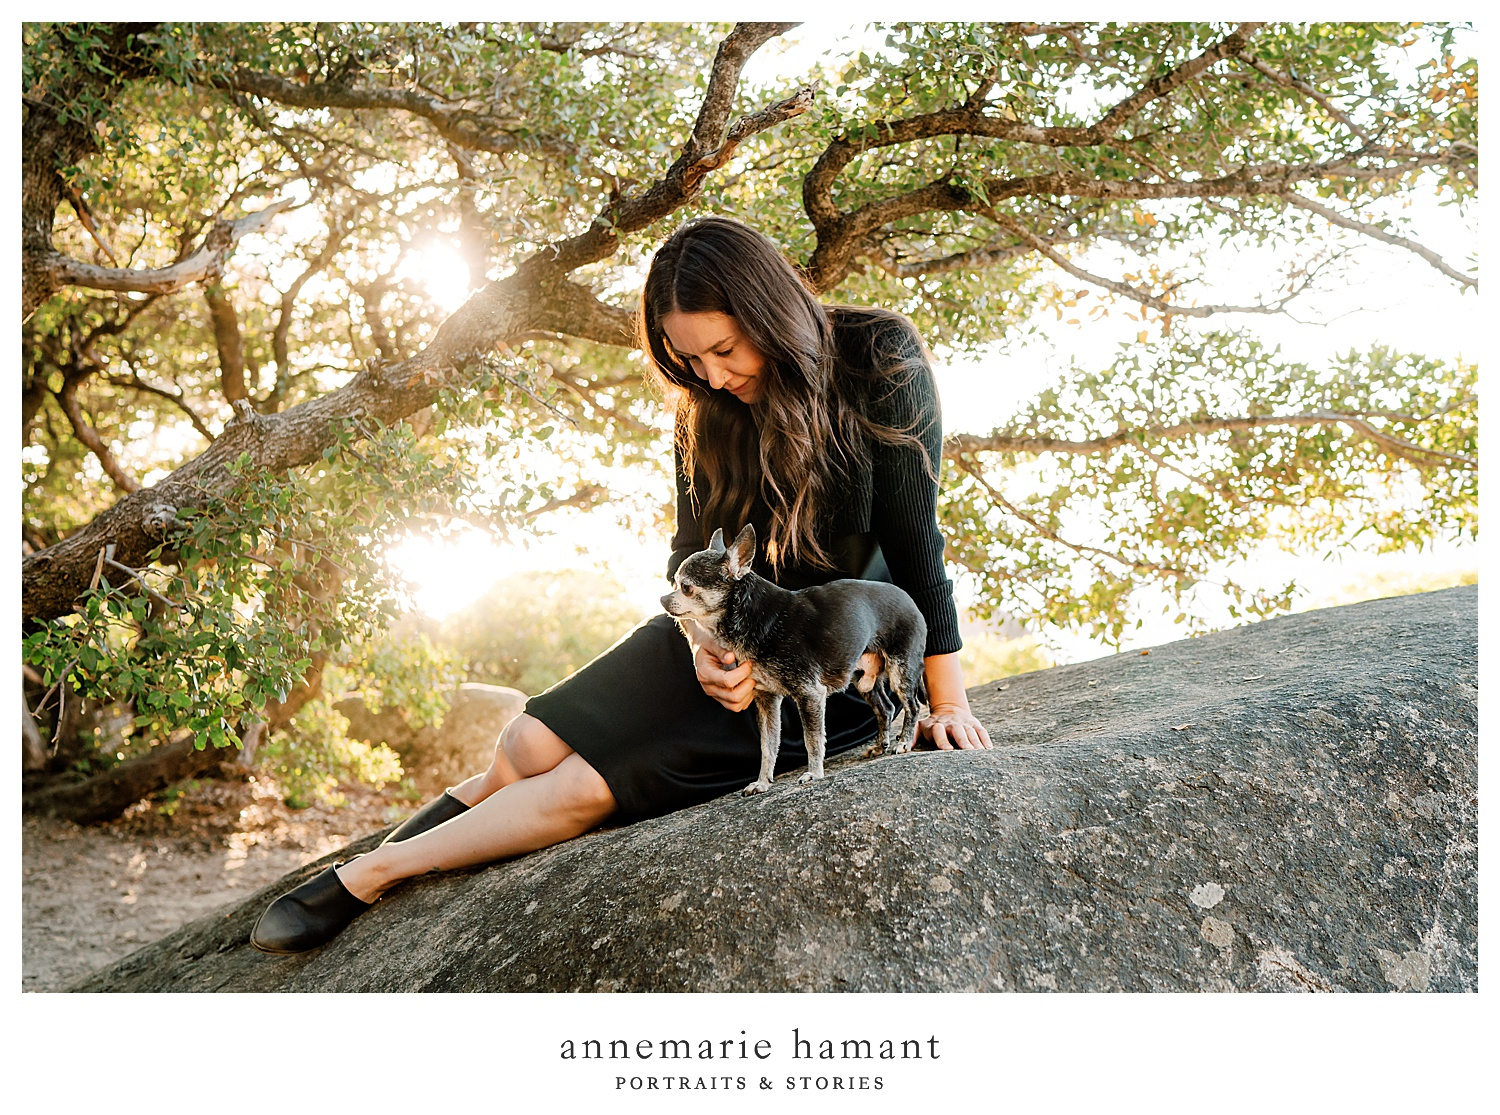 Sunset family photography at Sand Harbor, Lake Tahoe. AnneMarie Hamant is an award-winning lifestyle photographer who travels to capture her client's family connections and stories.